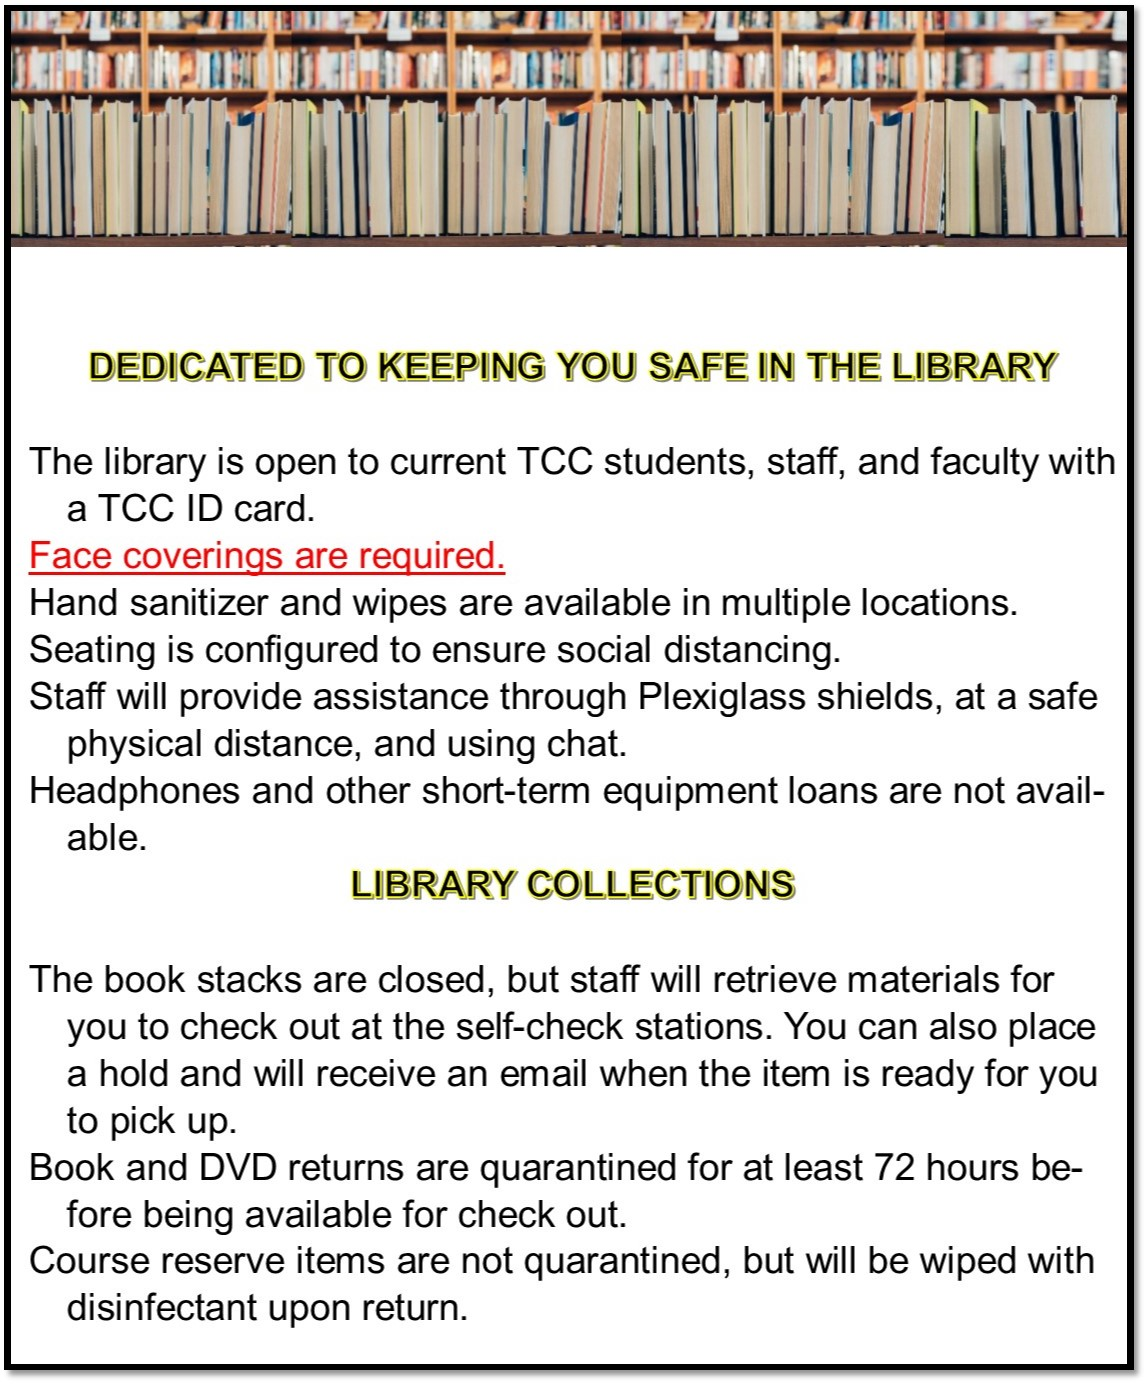 Image:  Keeping You Safe in the Library